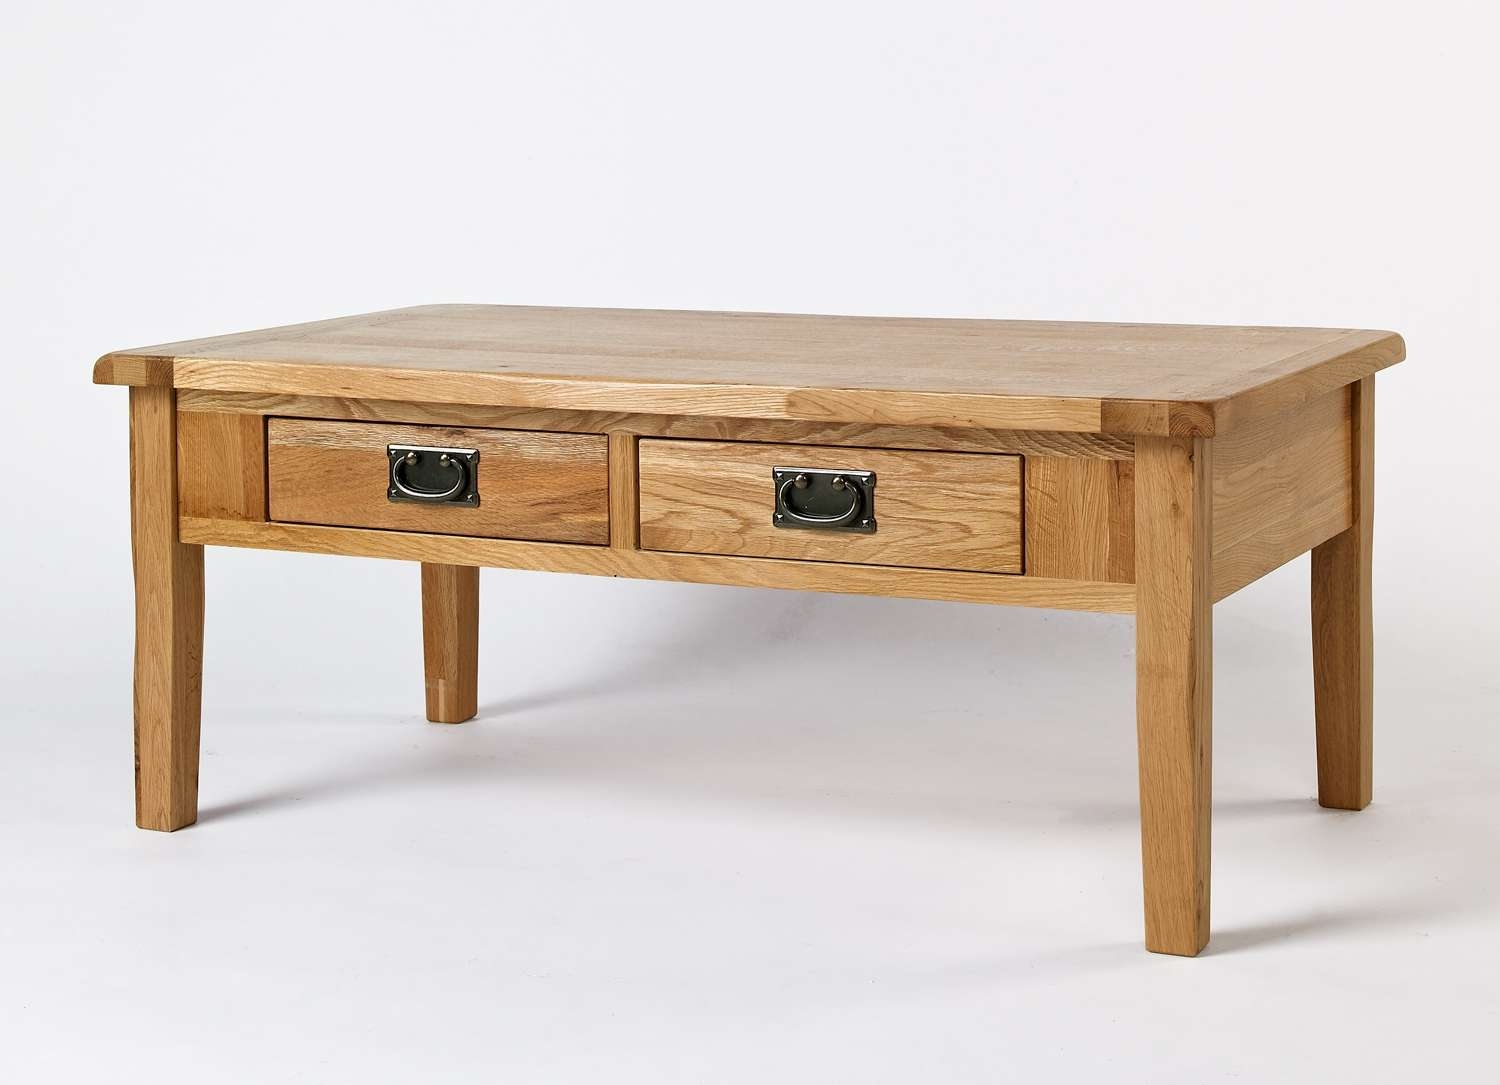 Most Popular Light Oak Coffee Tables With Drawers In All You Need To Know About Solid Oak Coffee Tables – Chinese (View 13 of 20)